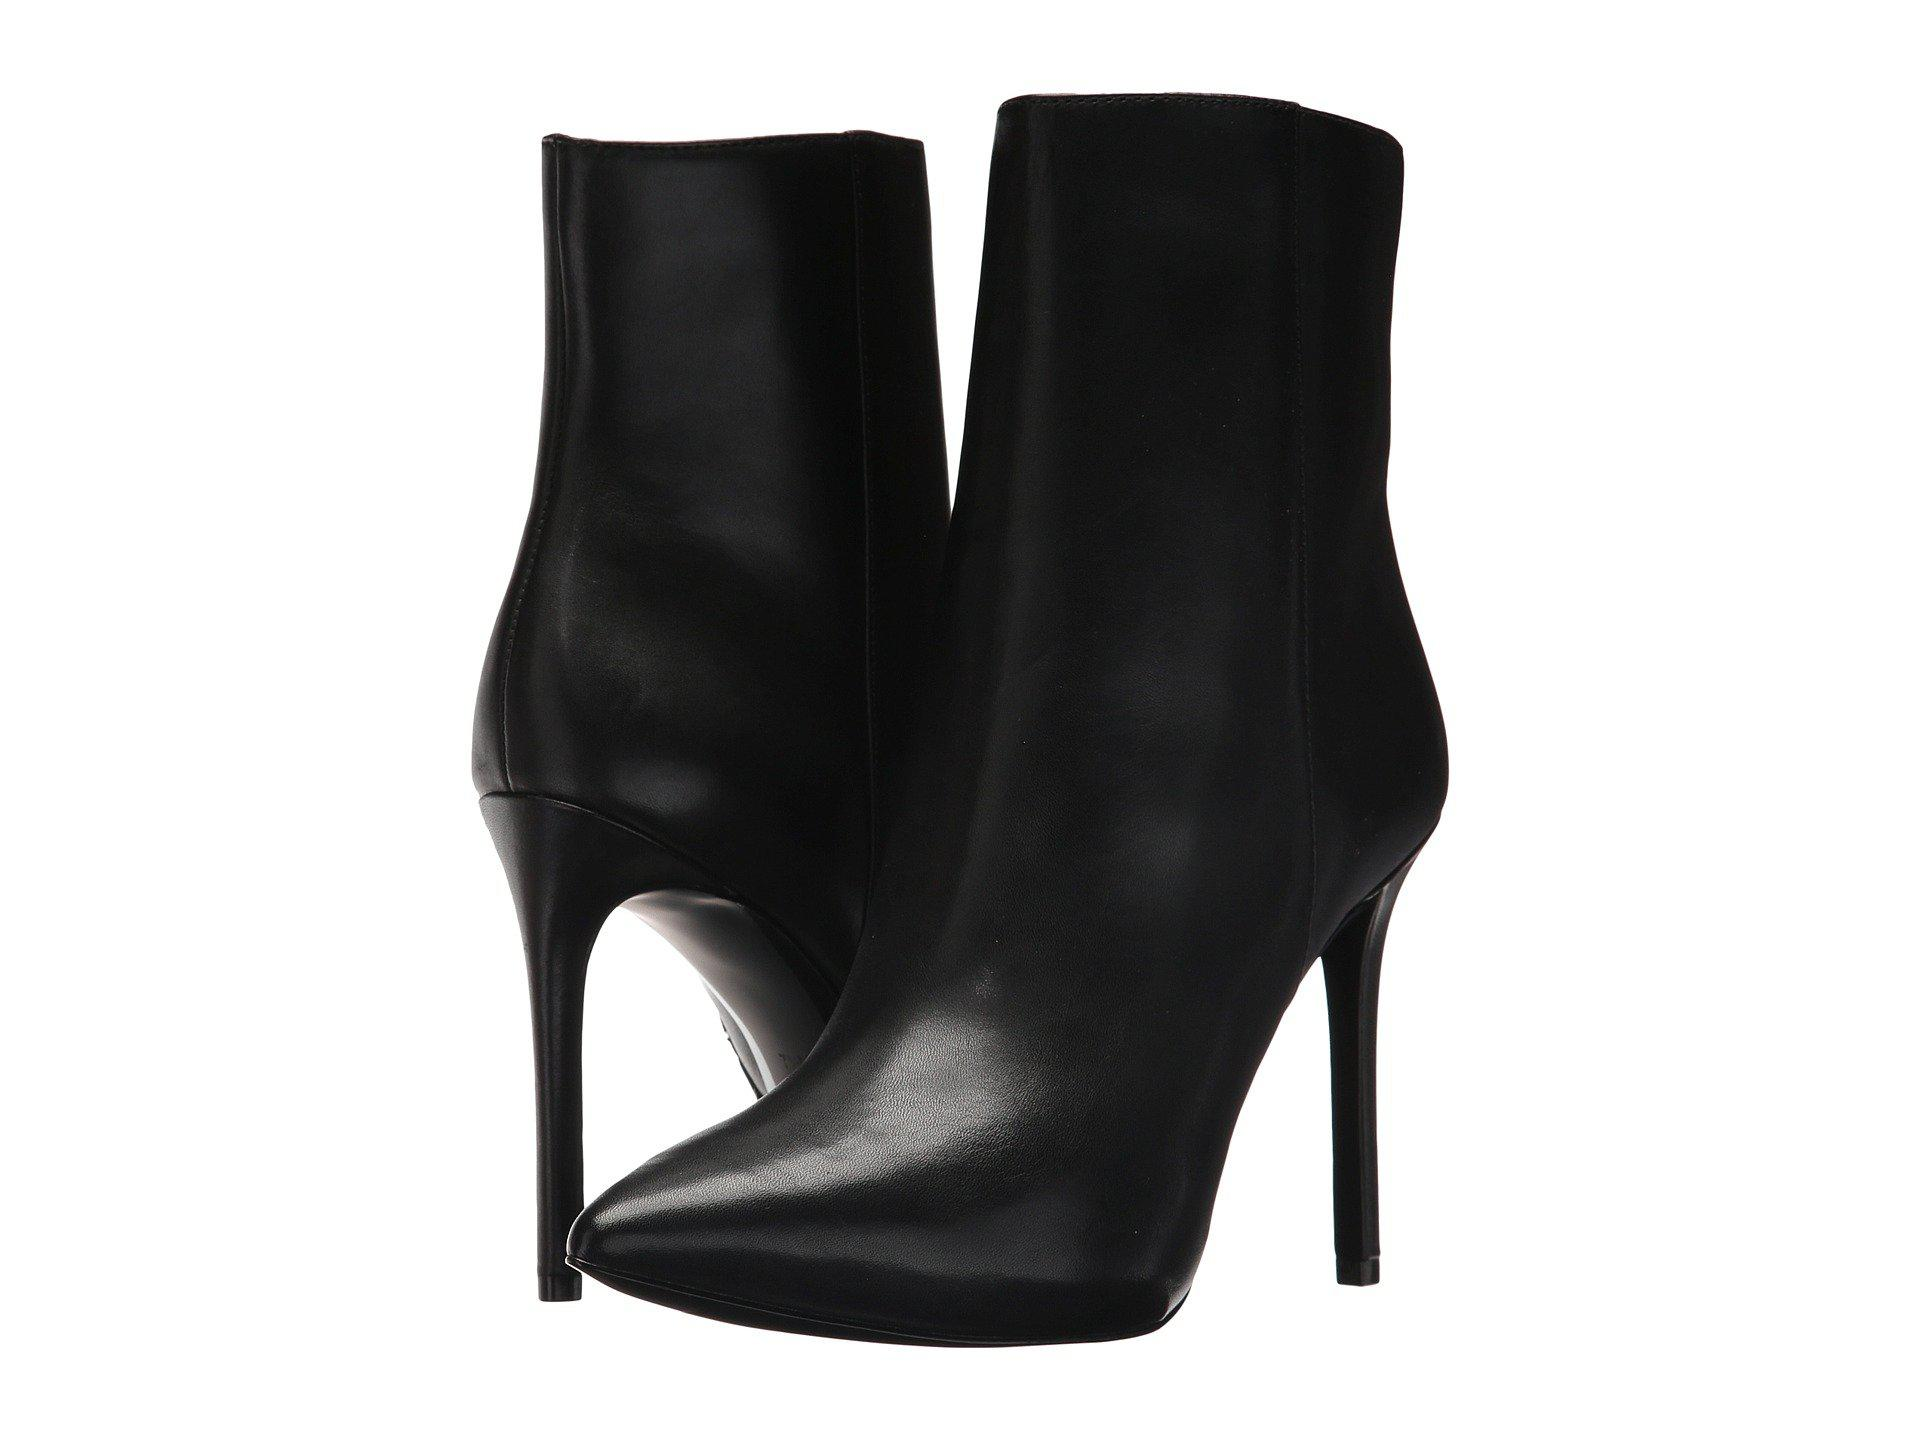 MICHAEL 14vxUi7vF0 BLAZE OPEN TOE BOOTIE - High heeled ankle boots - black oPnMmm8IcF